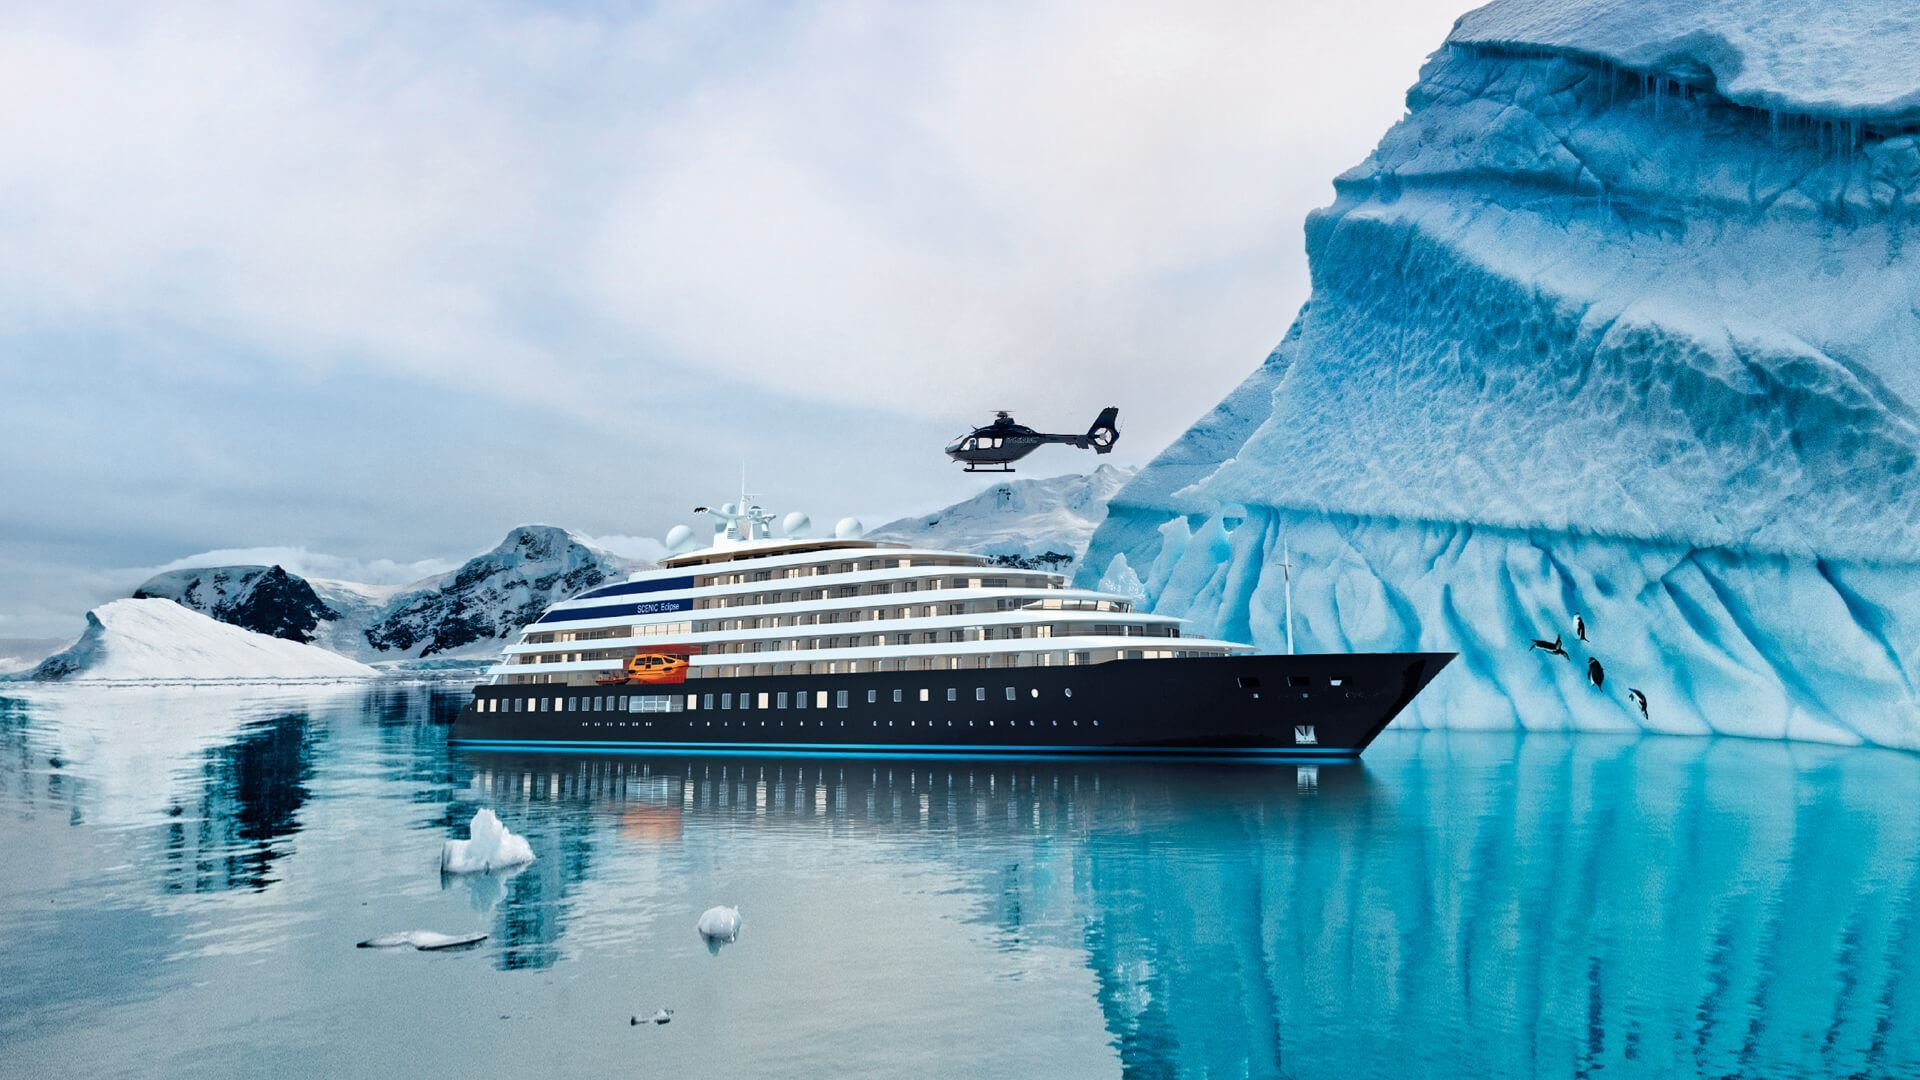 Scenic Adds Two New Itineraries to Eclipse's Debut Season